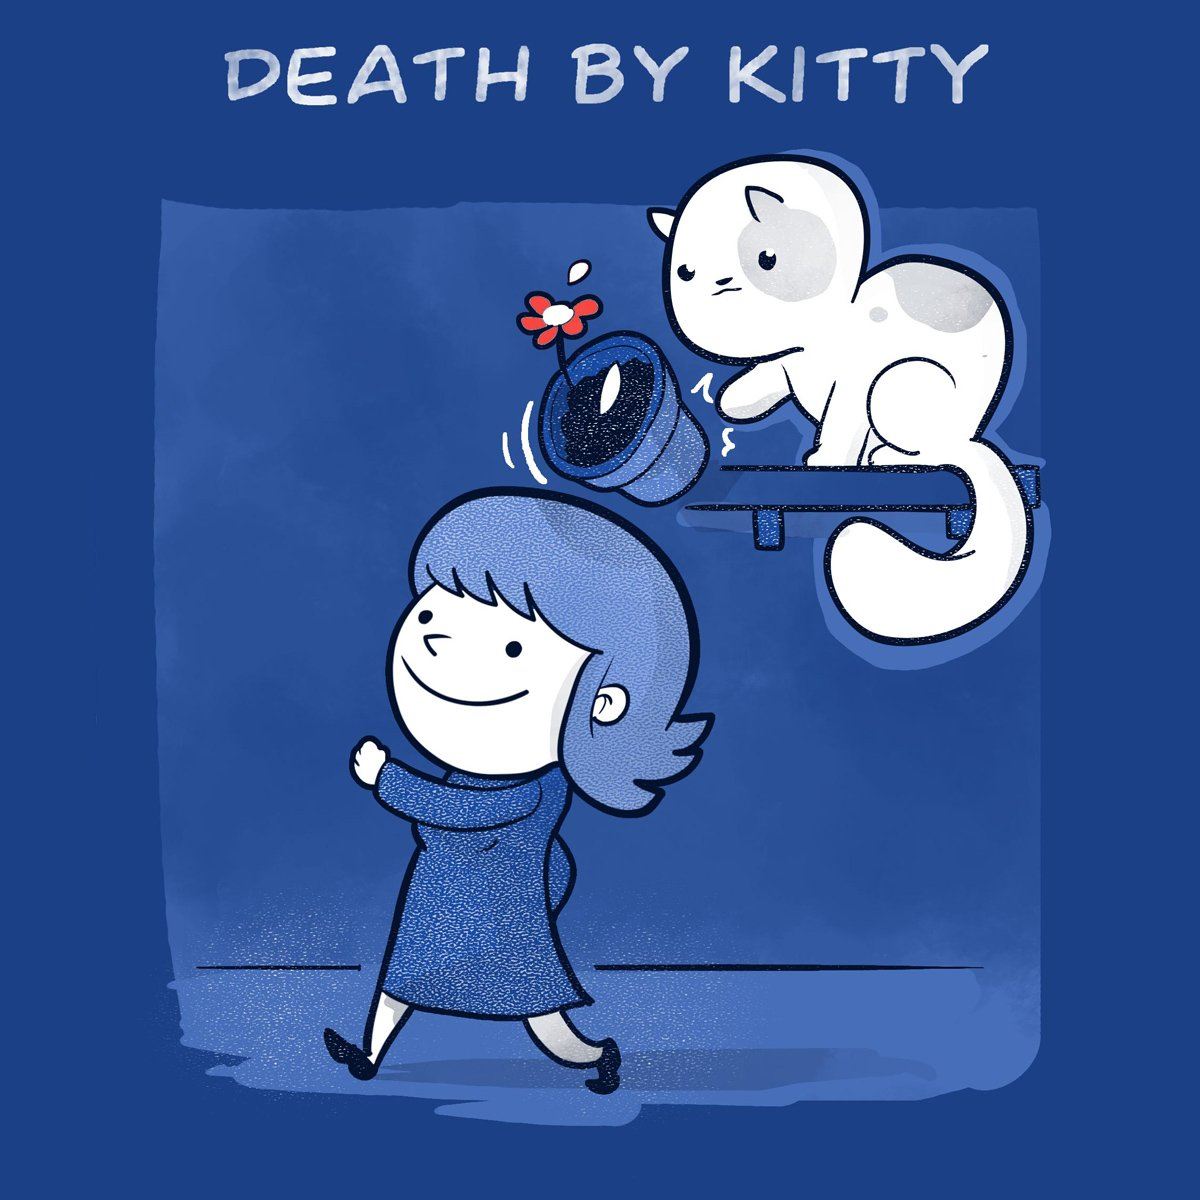 Kitty jungs death